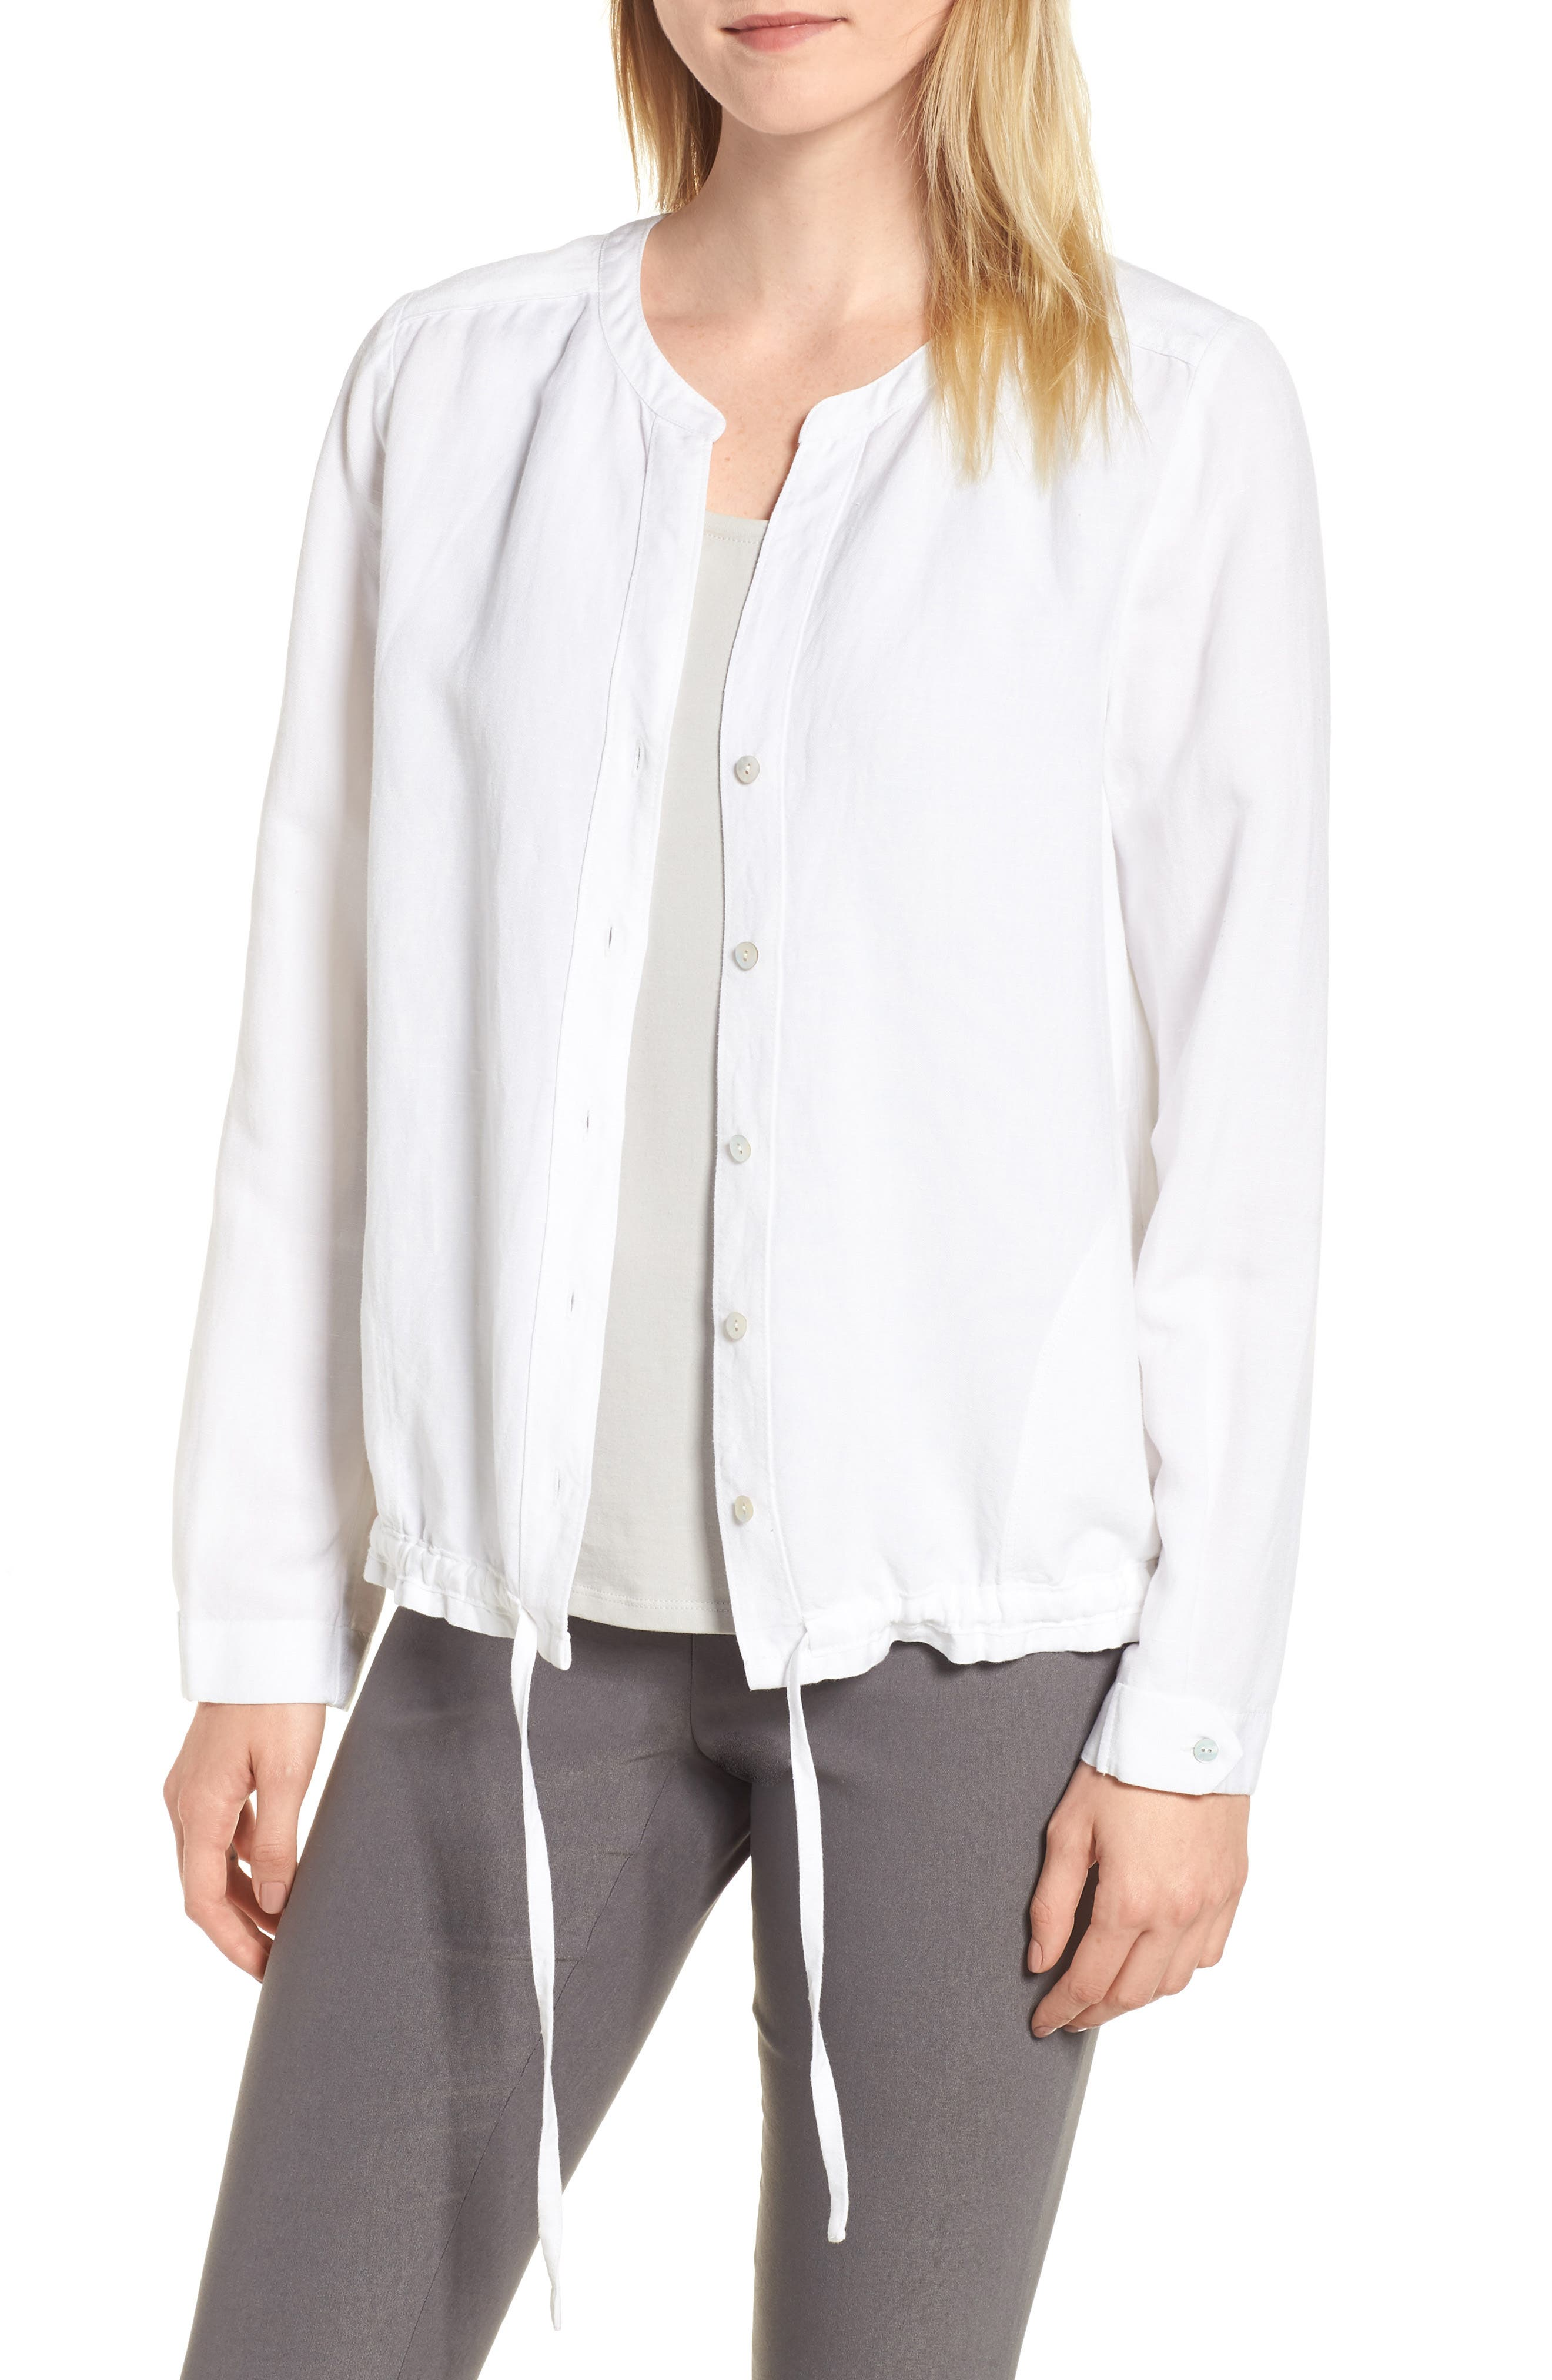 Homebound Linen Blend Drawstring Jacket,                         Main,                         color, Paper White